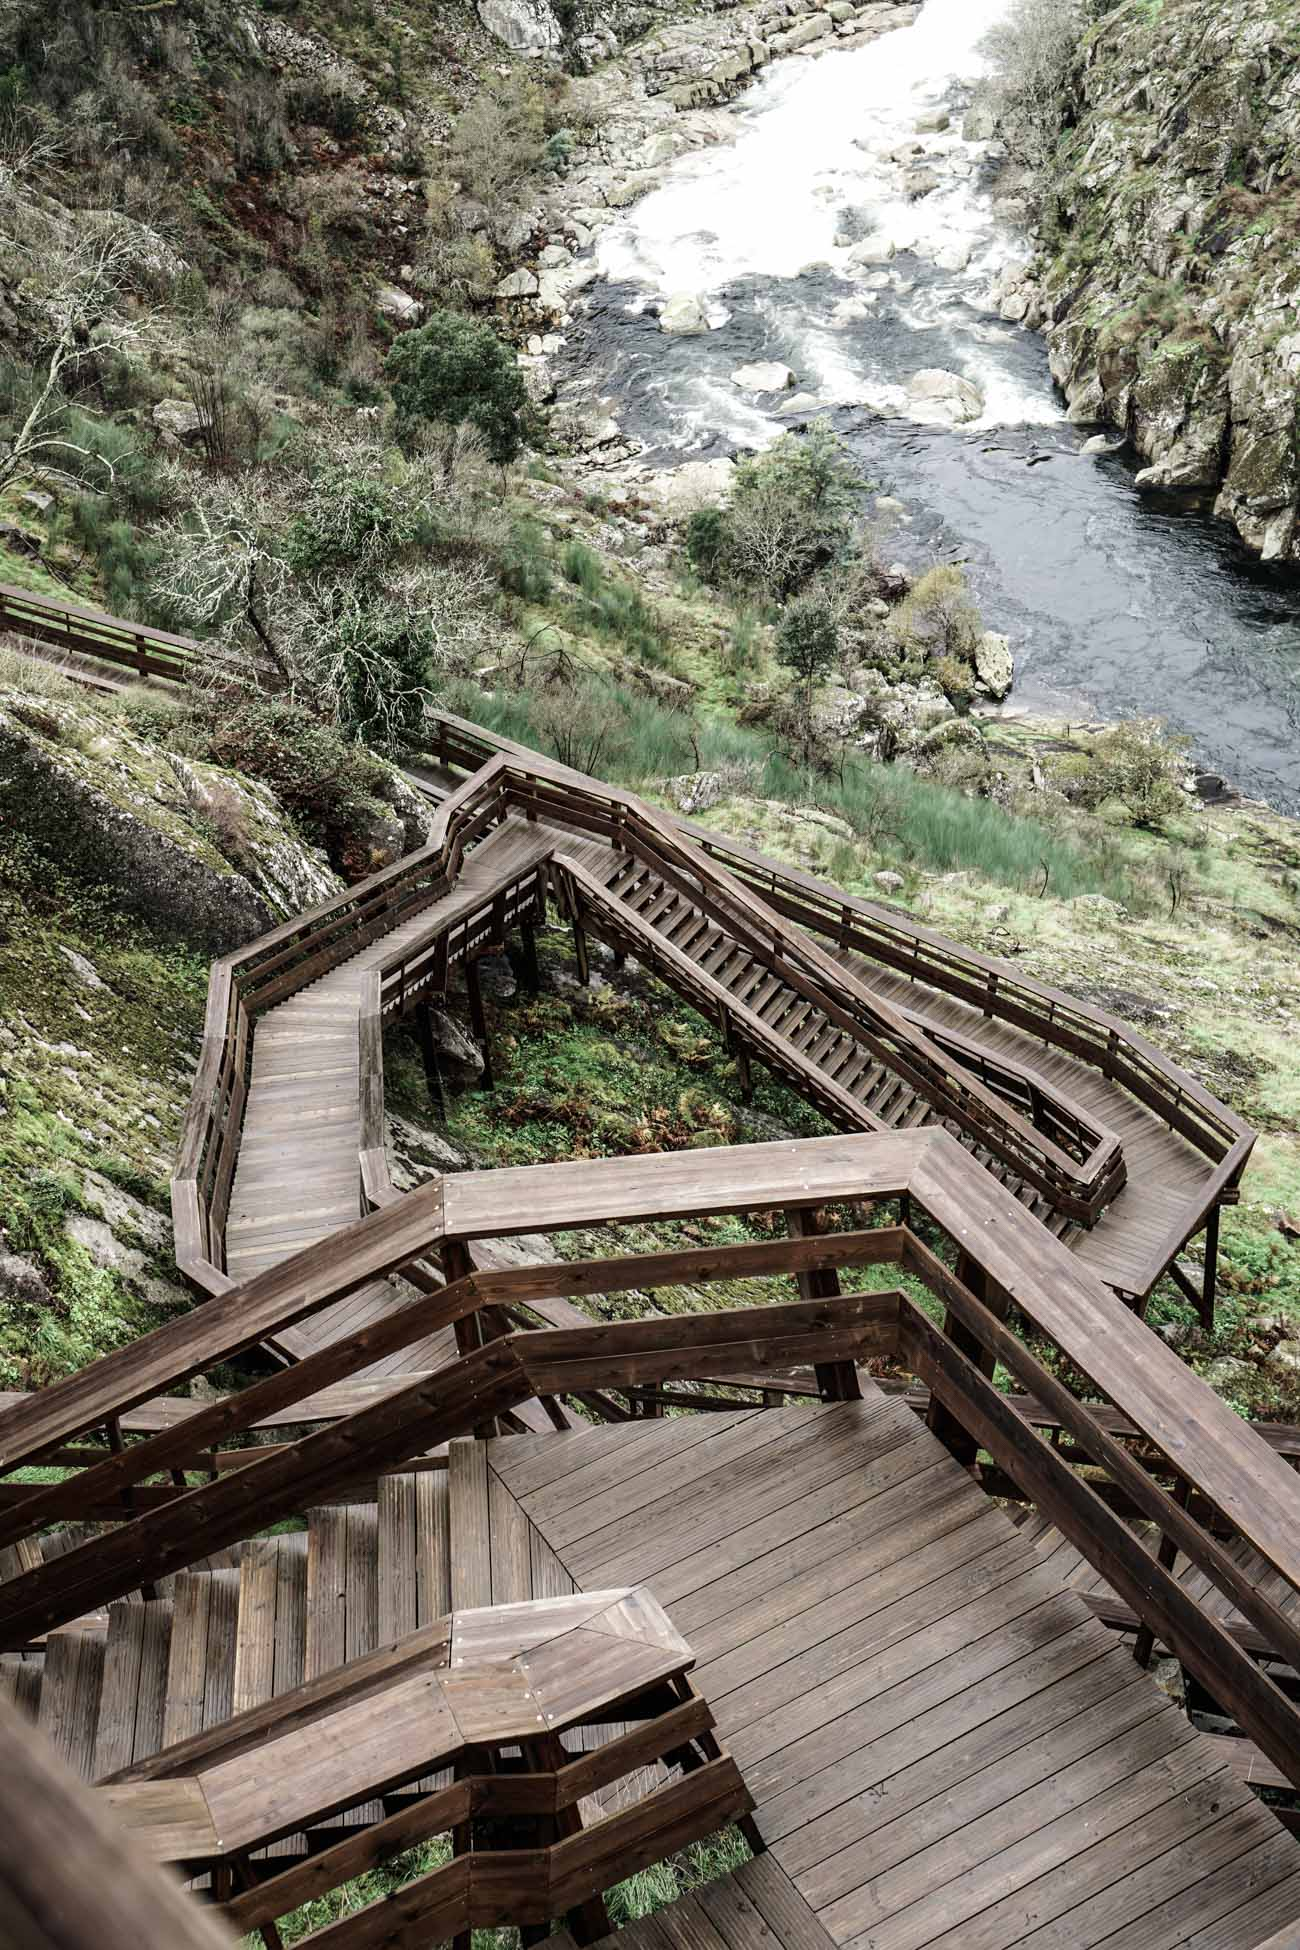 The true nature of things, Emotions, Luxiders, Luxiders Magazine, Luxiders issue n2, Portugal, Poetry, originality, Paiva Walkways, saudade, evocation, six senses douro, harmony, snake house, sustainability, sustainable travel, sustainable magazine